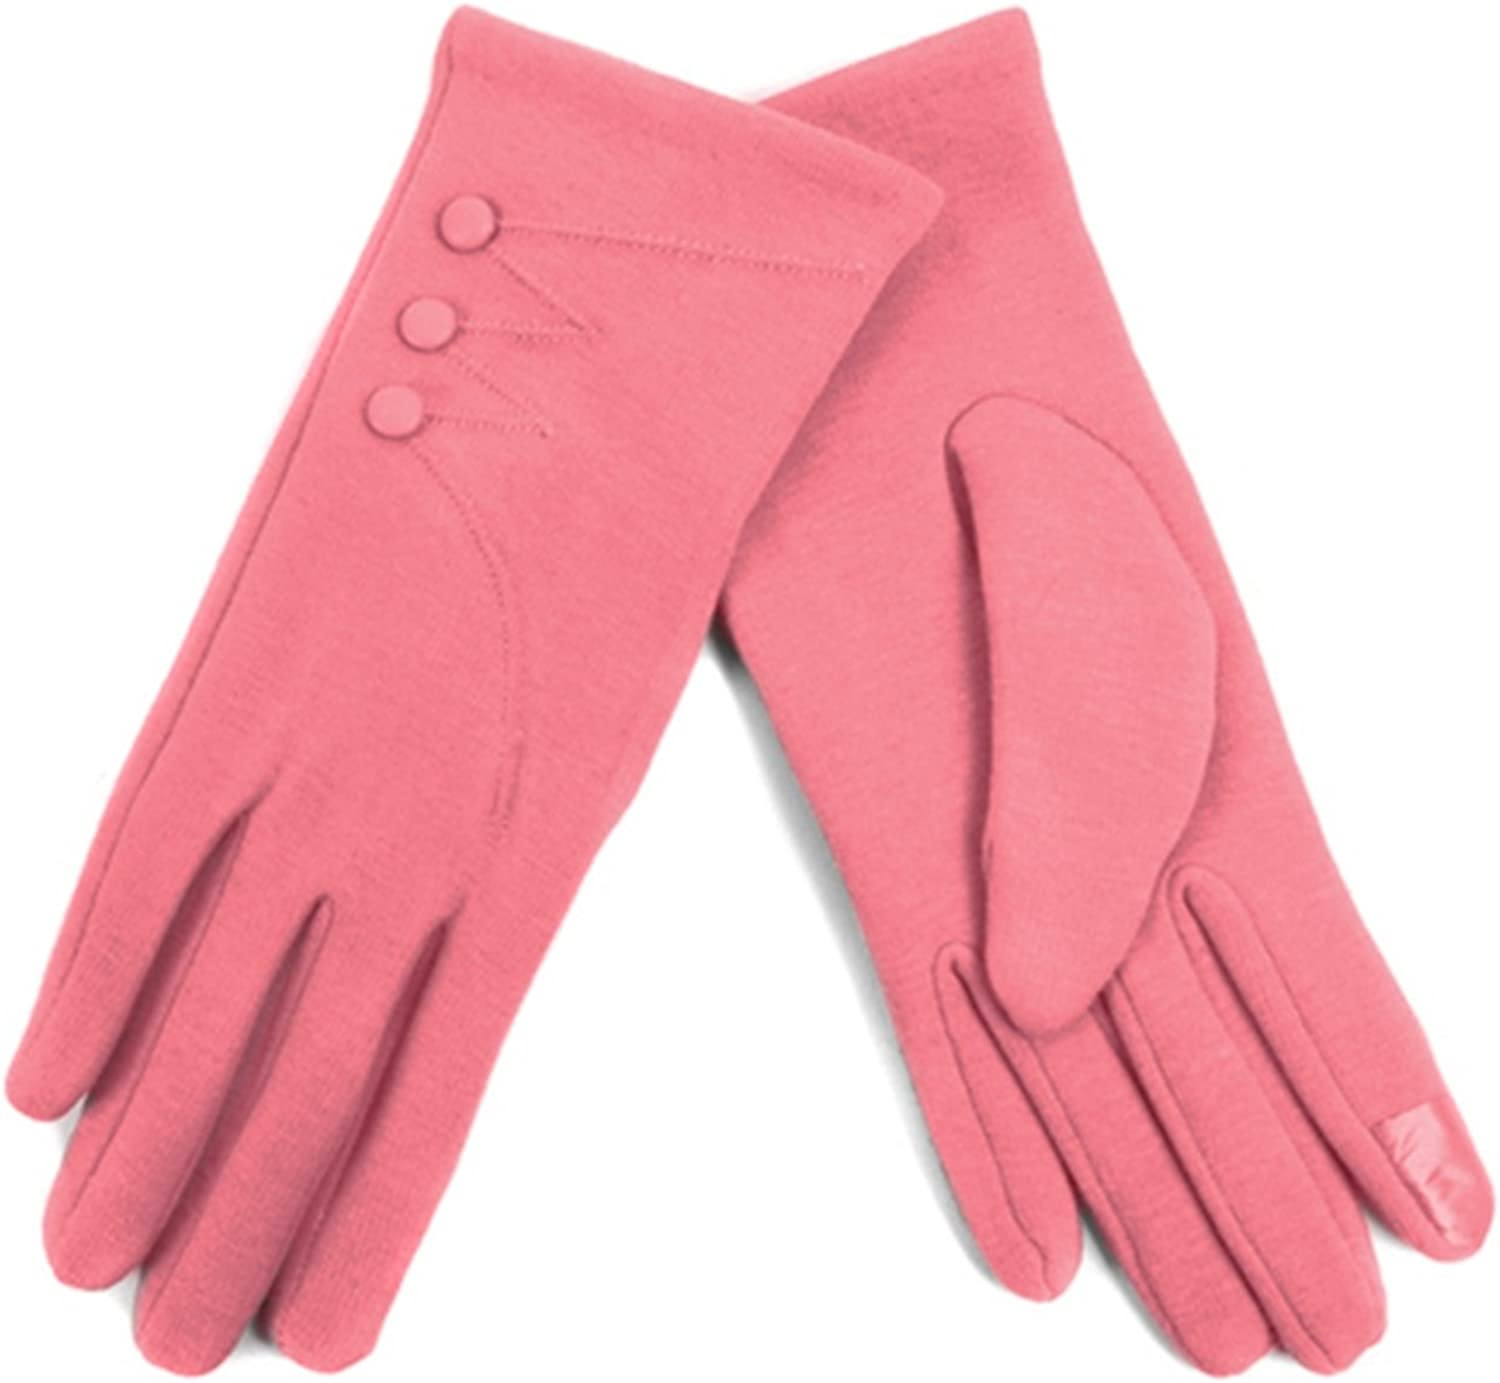 Women's Pink Stylish Touch Screen Gloves with Button Accent & Fleece Lining SM